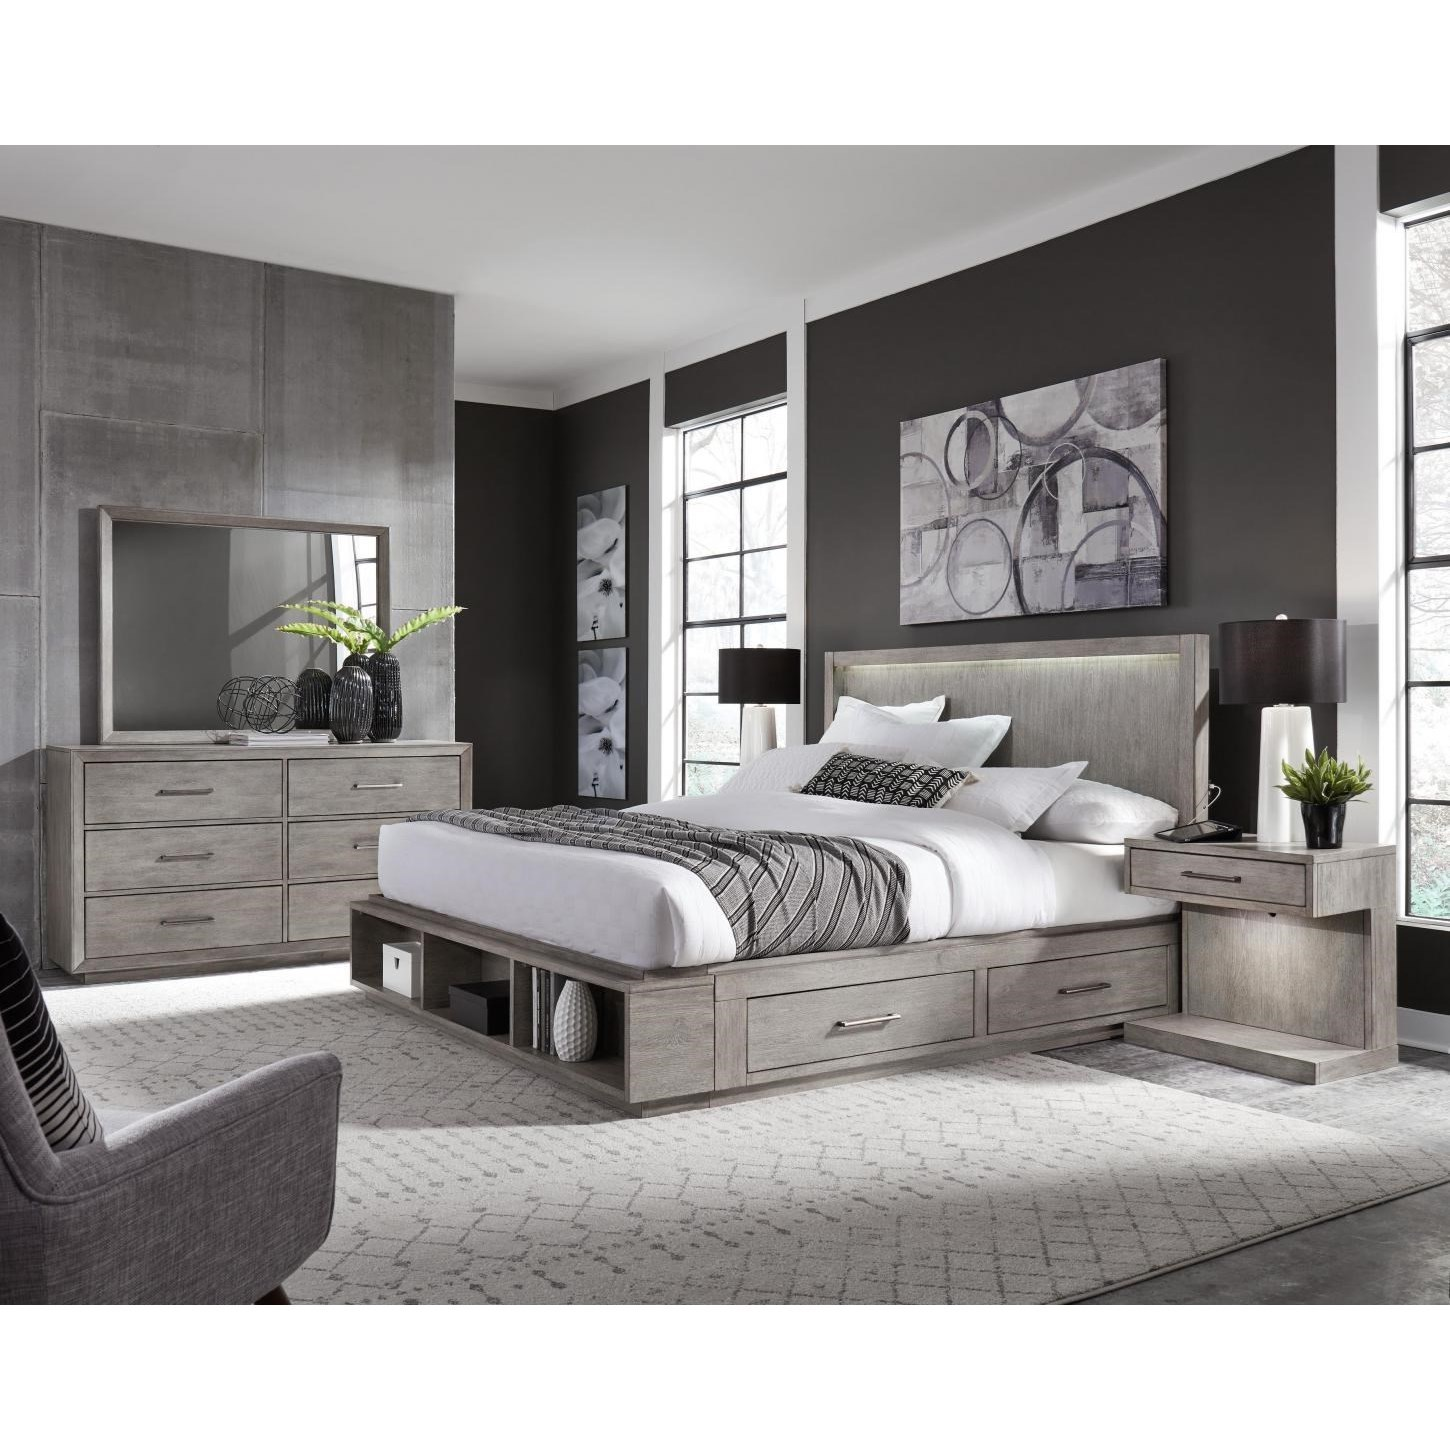 Platinum King Bedroom Group by Aspenhome at Stoney Creek Furniture